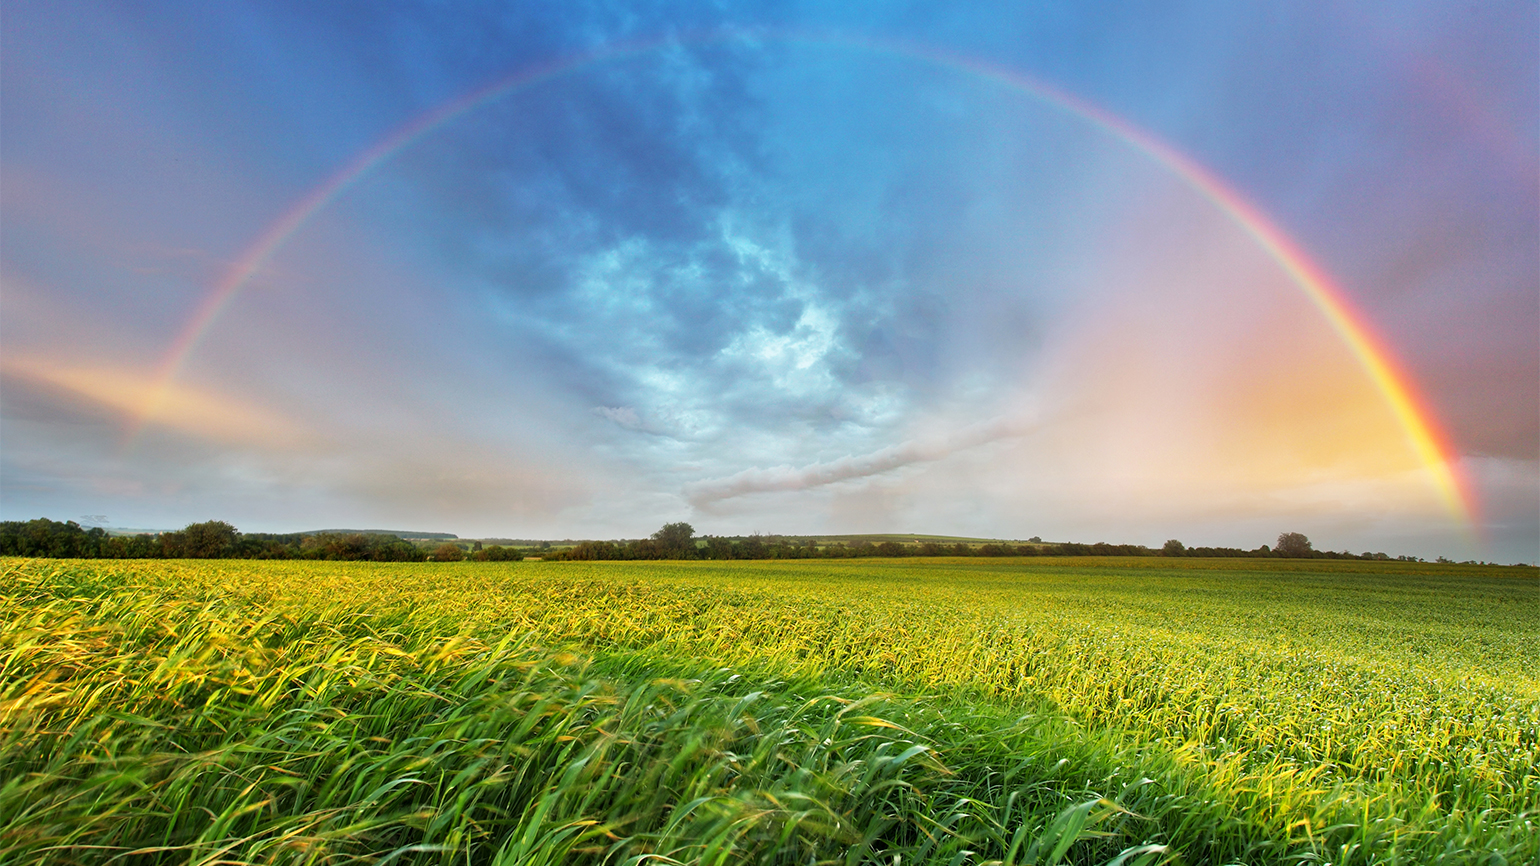 A rainbow arcs over green fields